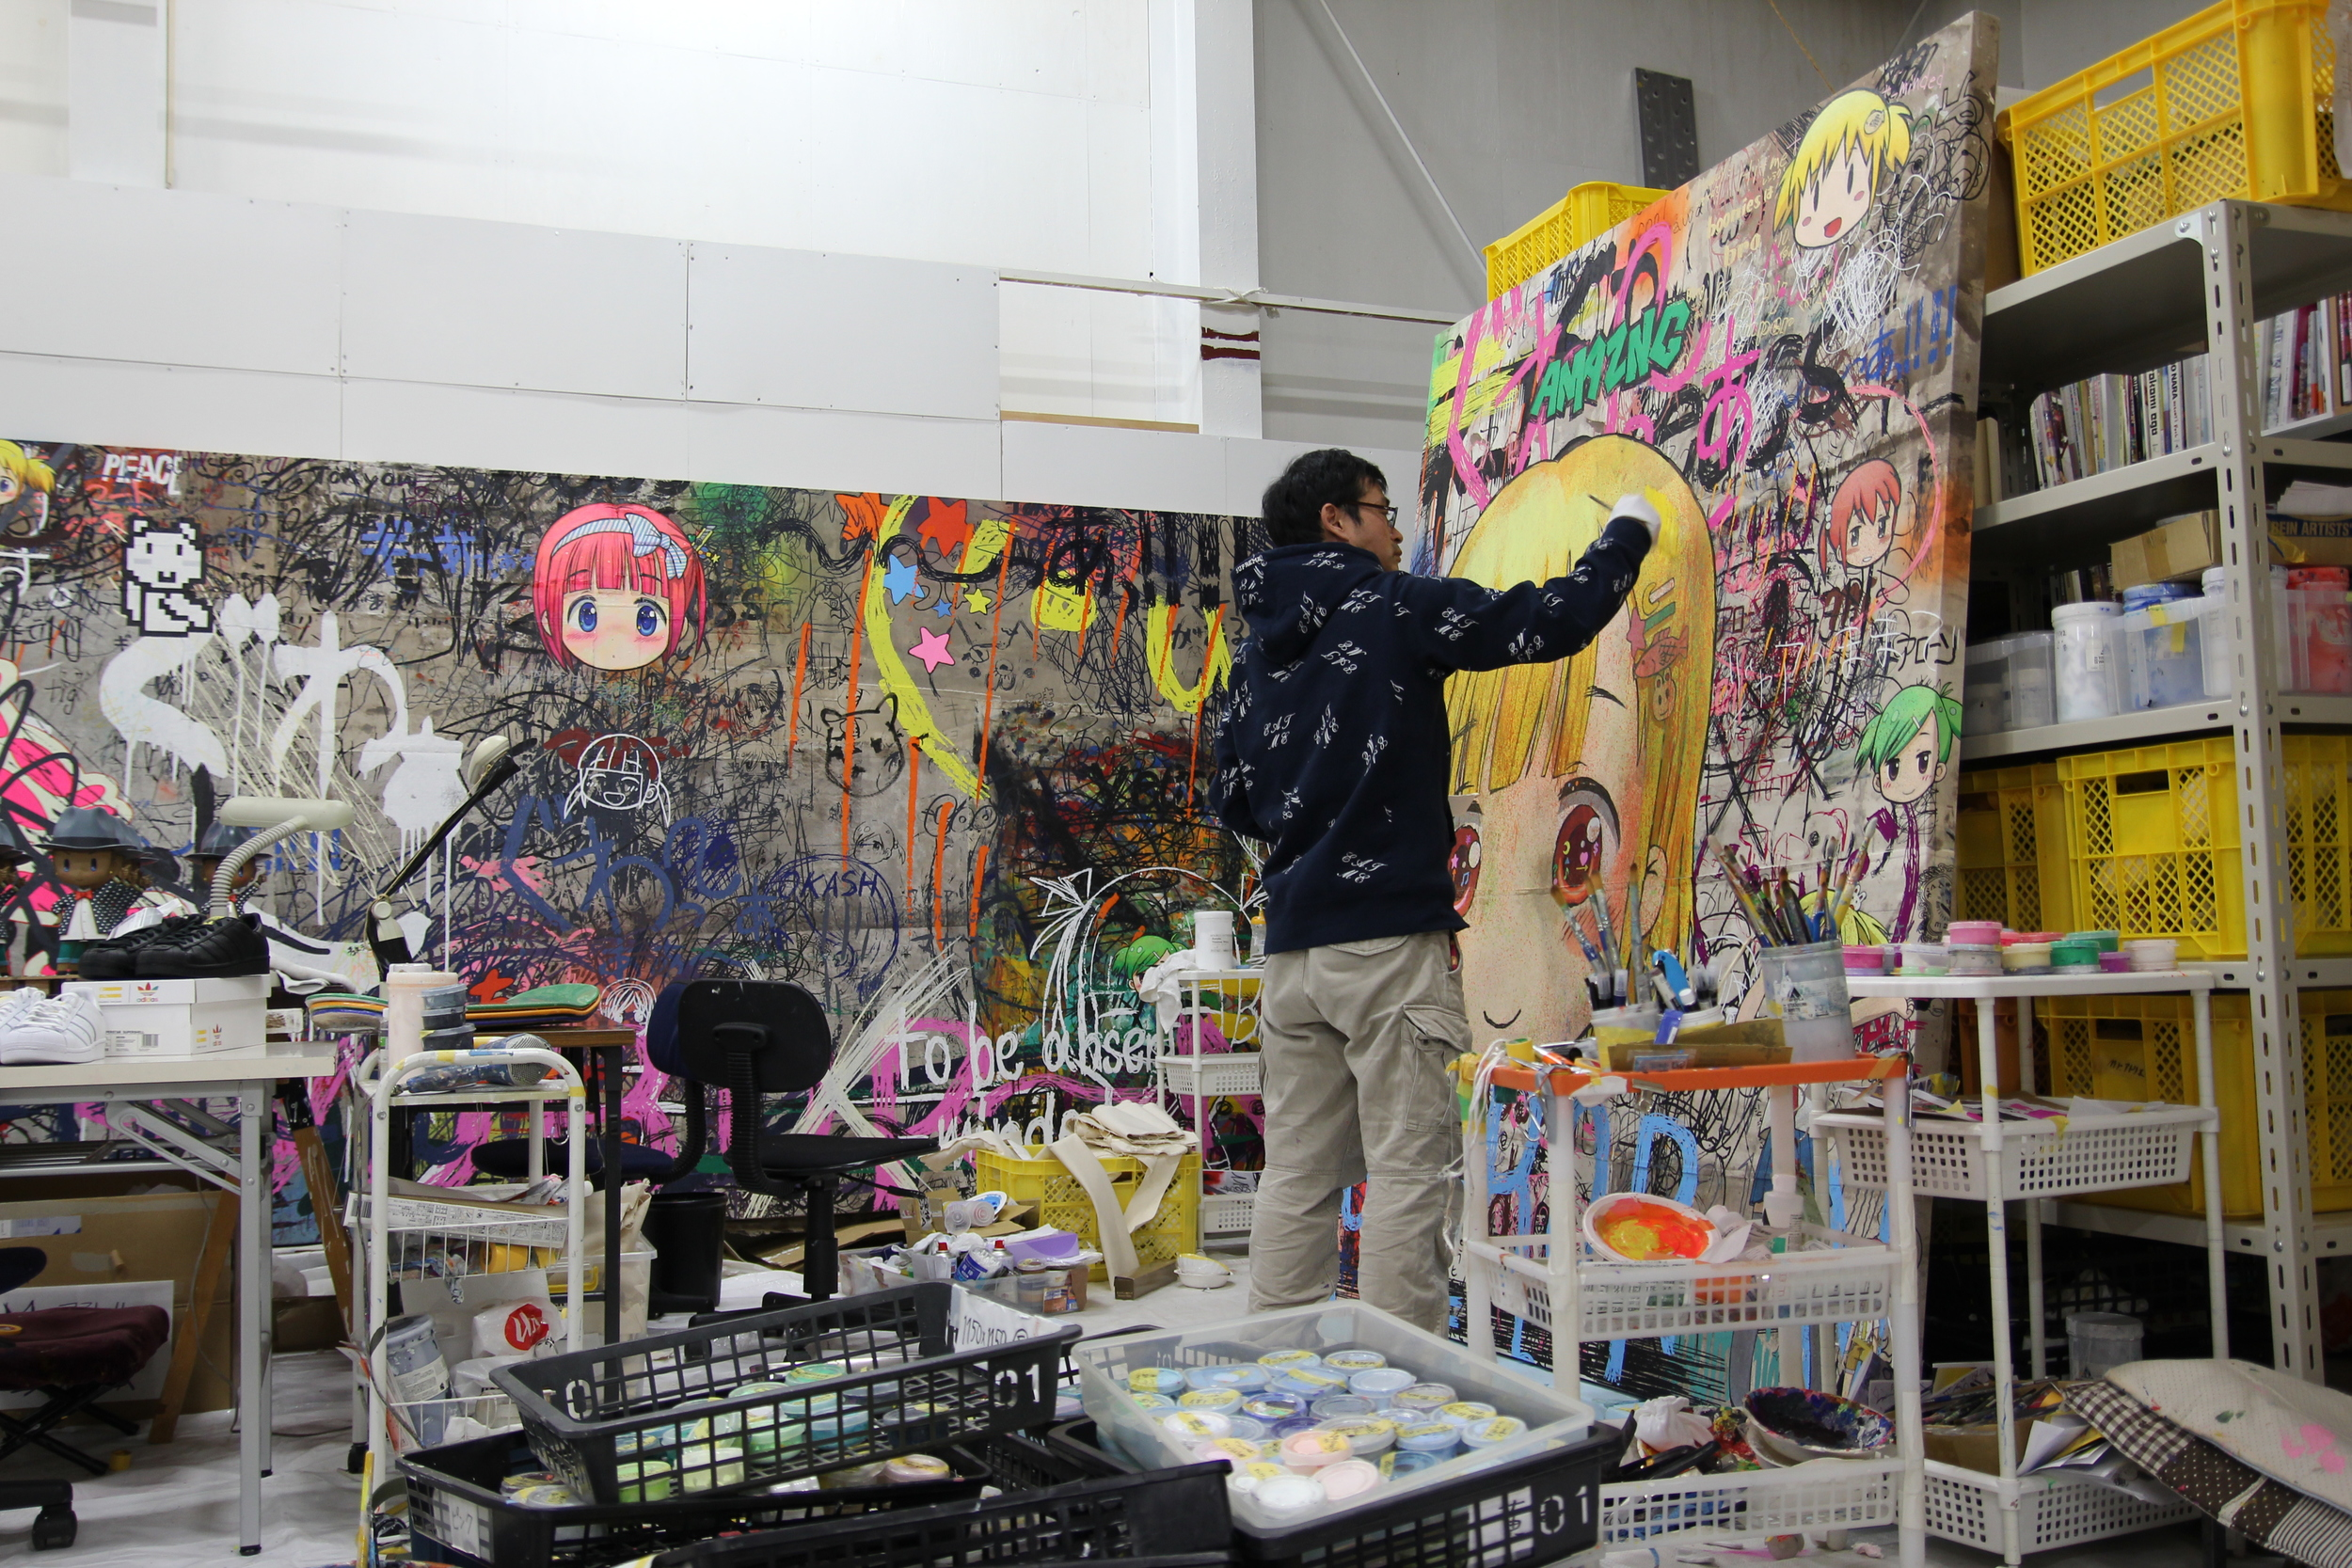 The artist Mr. at work in his studio